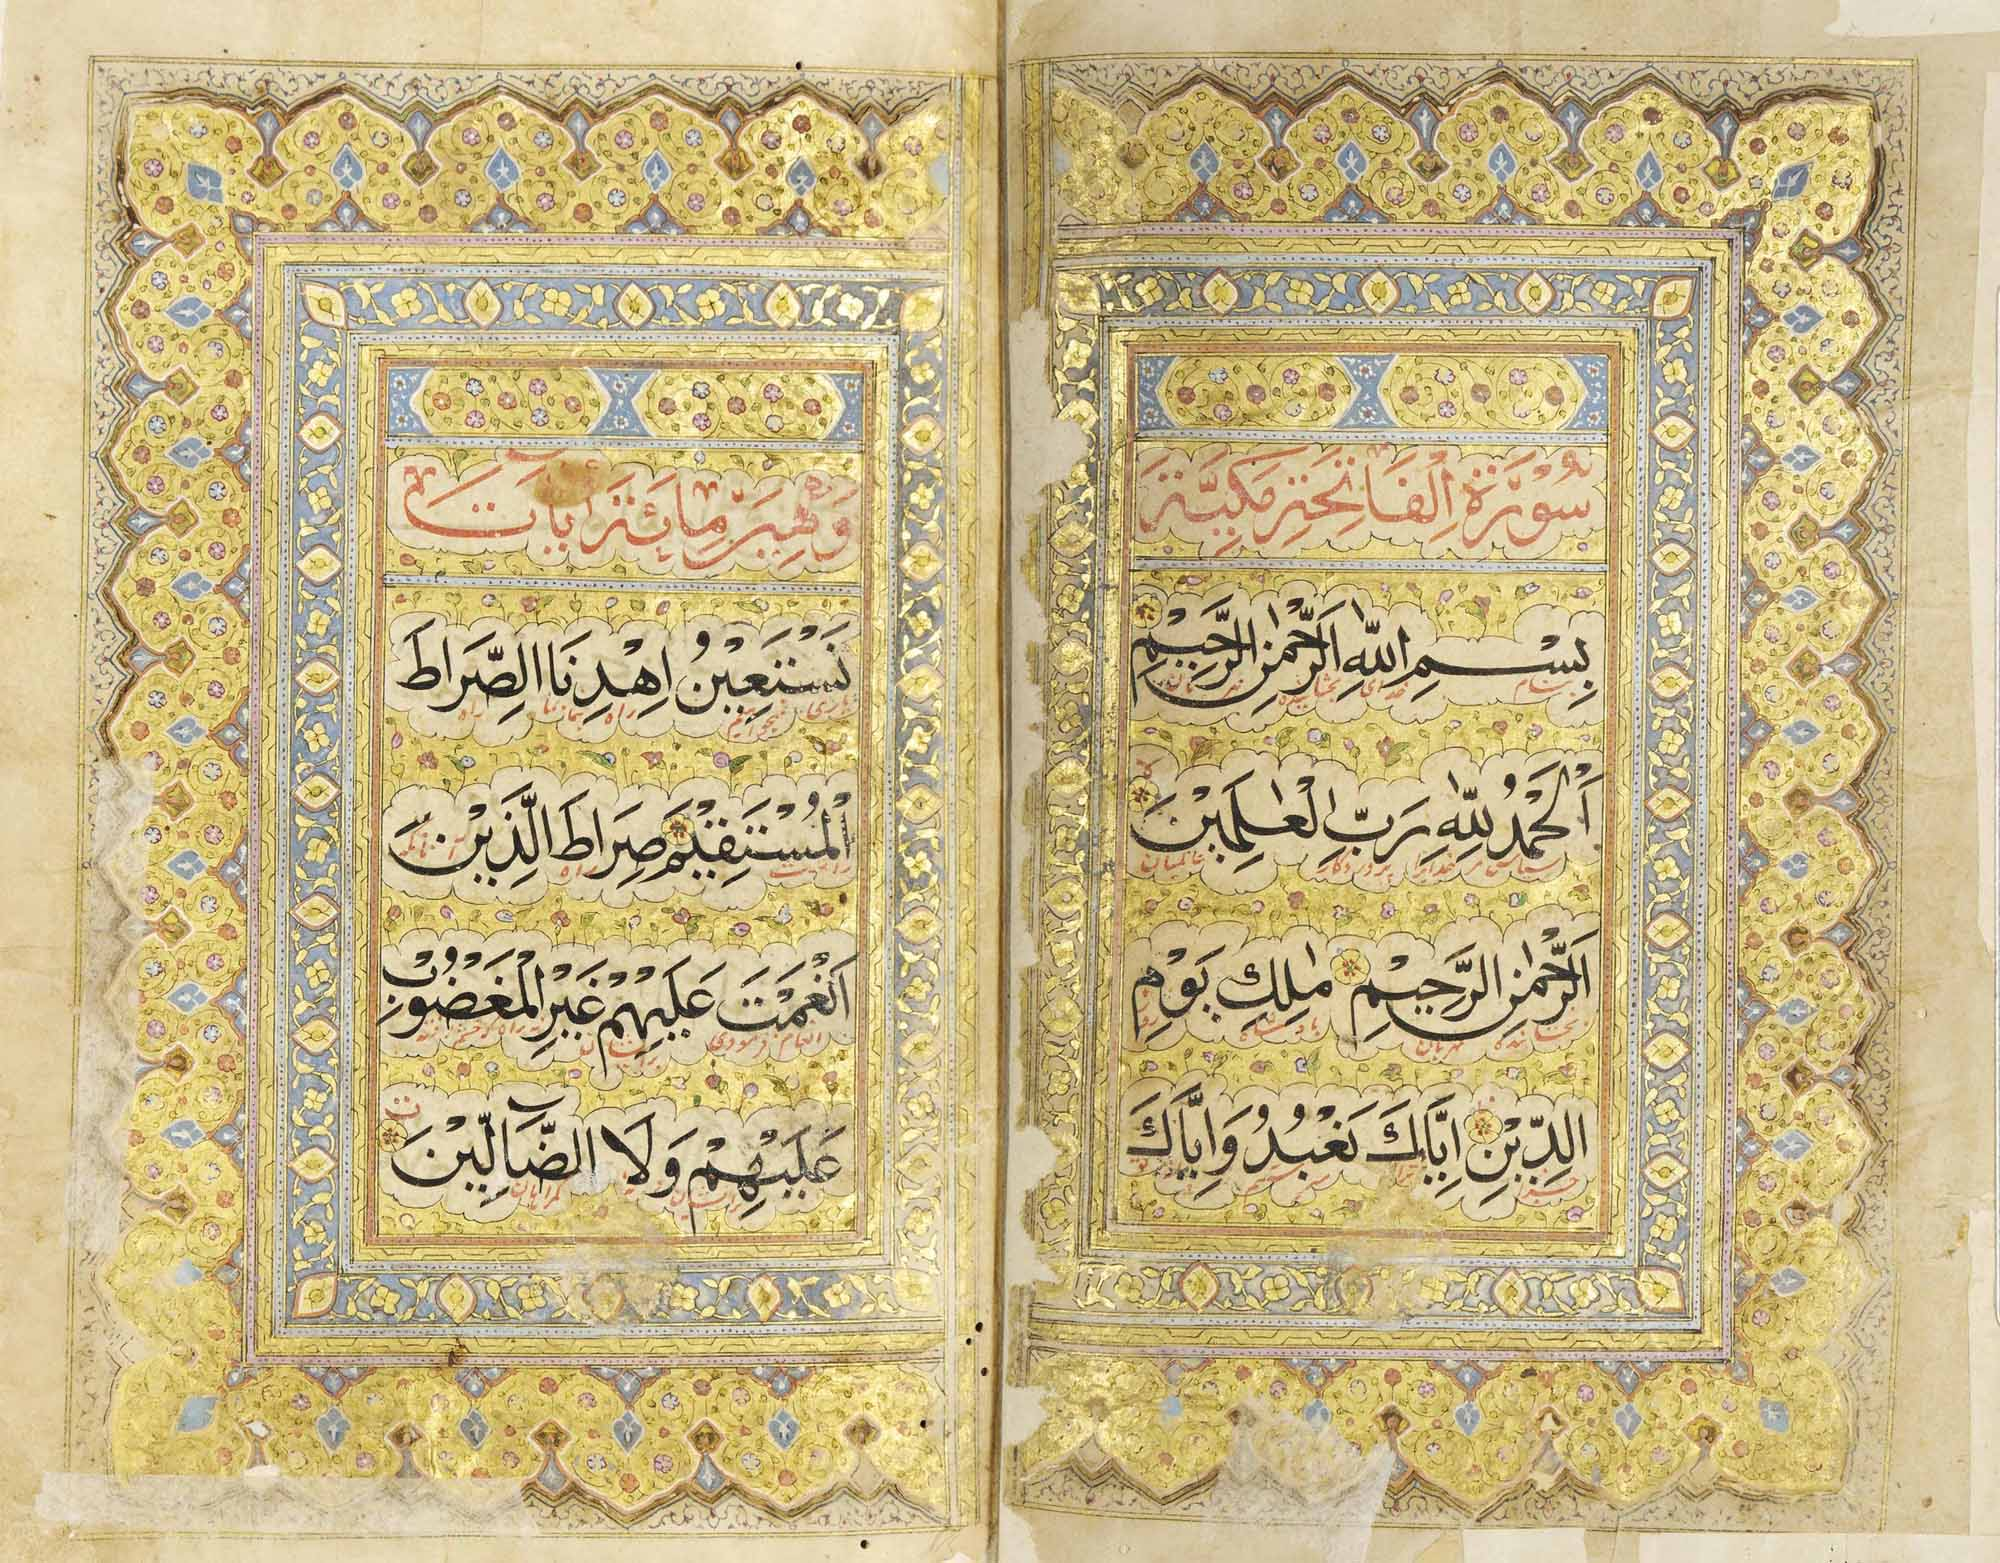 A FINE MUGHAL QUR'AN IN THREE